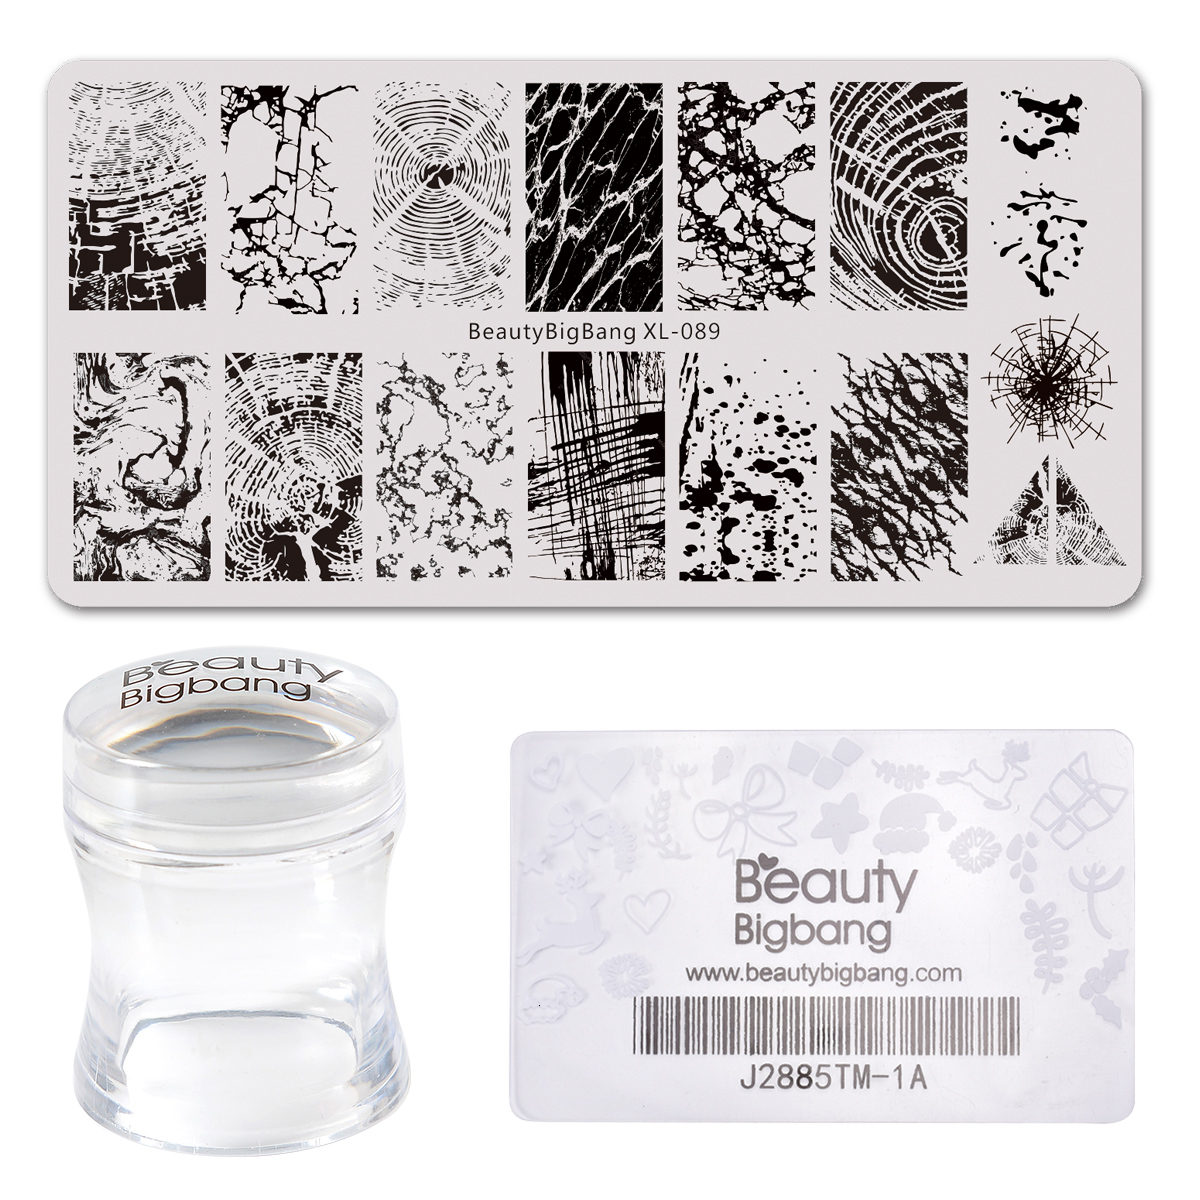 Beautybigbang Nail Stamping Plates Set 6*12cm Stainless Steel Annual Ring Flower Template Stencil Mold Nail Art Accessories Set(China)